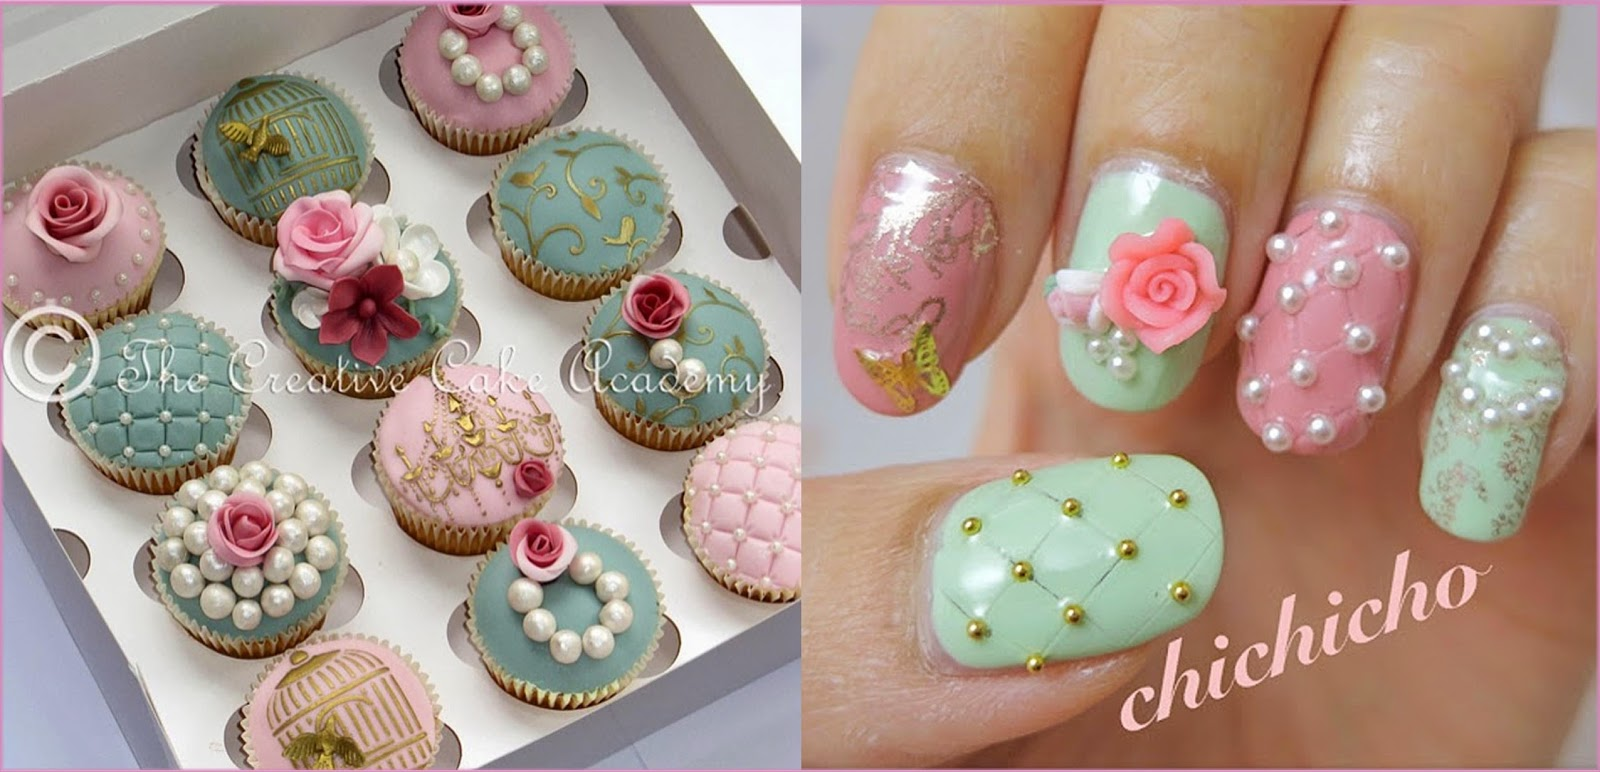 The Creative Cake Academy: VINTAGE CUPCAKES AND NAIL ART ...